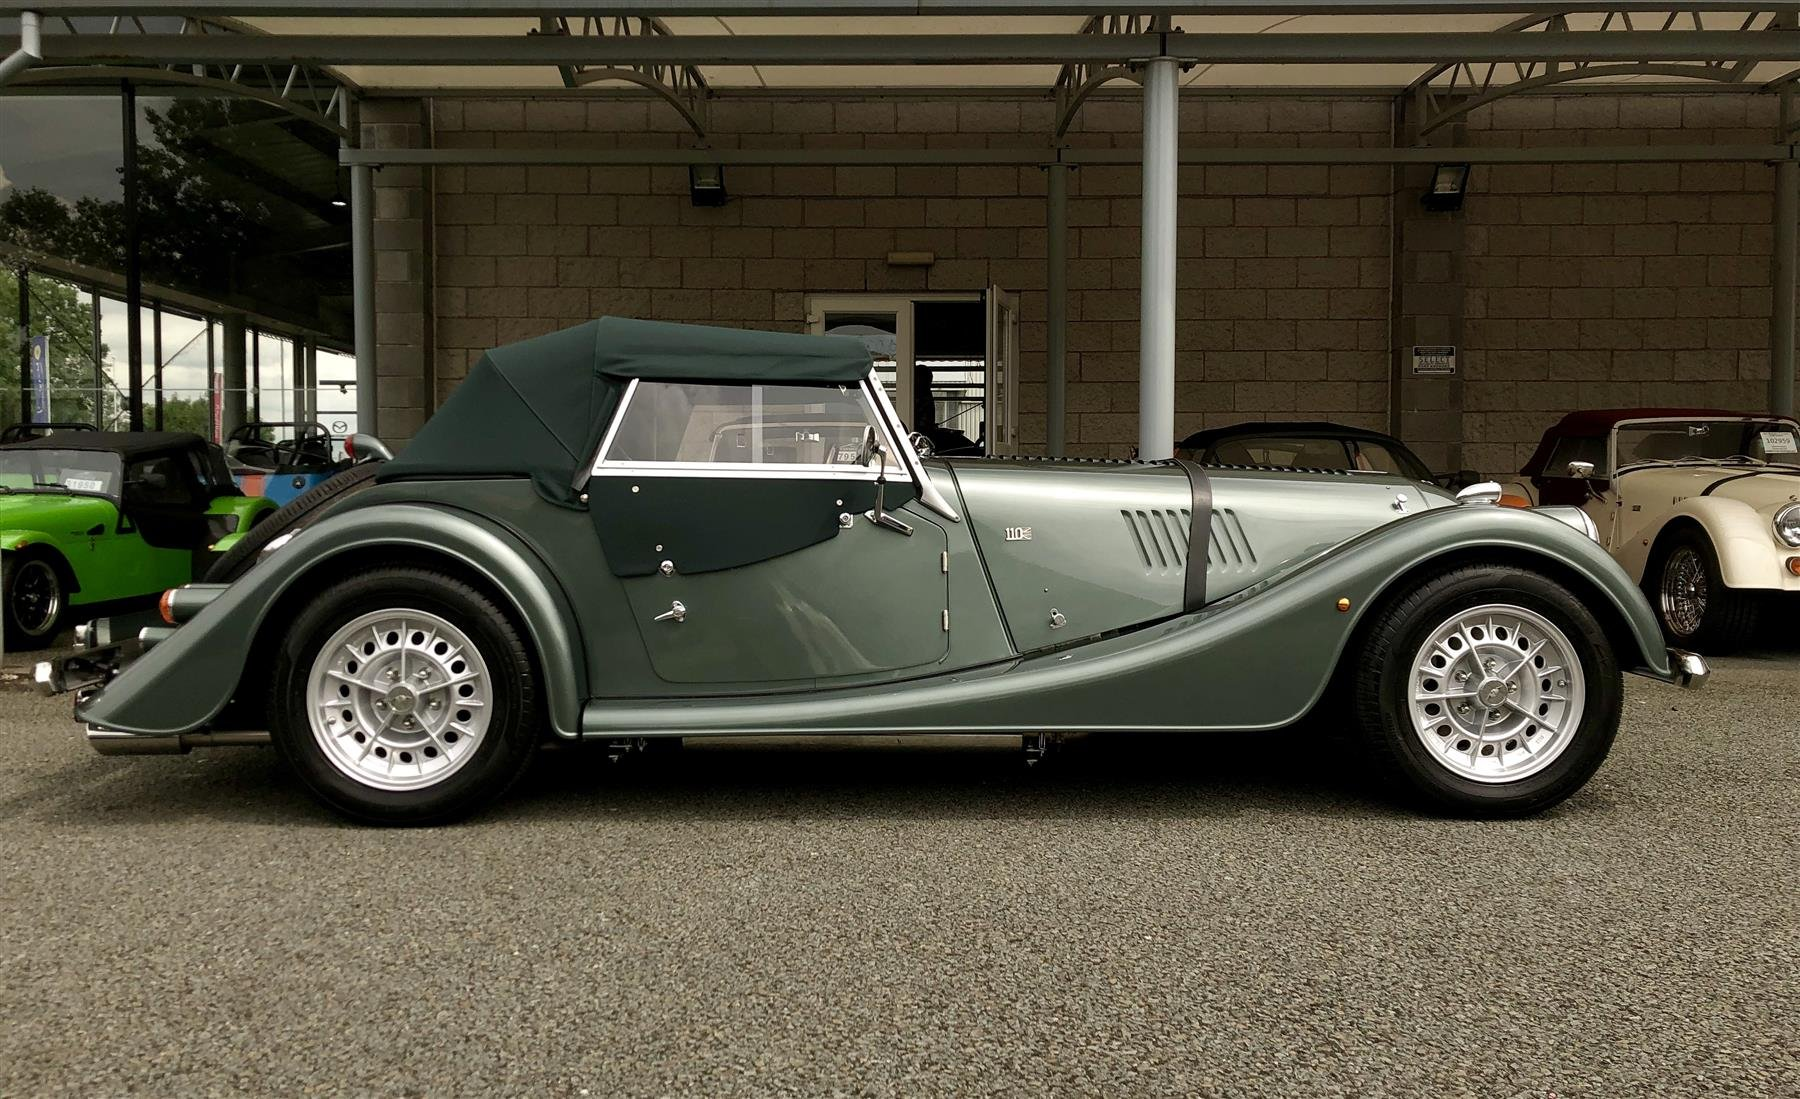 2019 Morgan Roadster 3.7 V6 110th Anniversary  (NEW CAR) For Sale (picture 4 of 6)